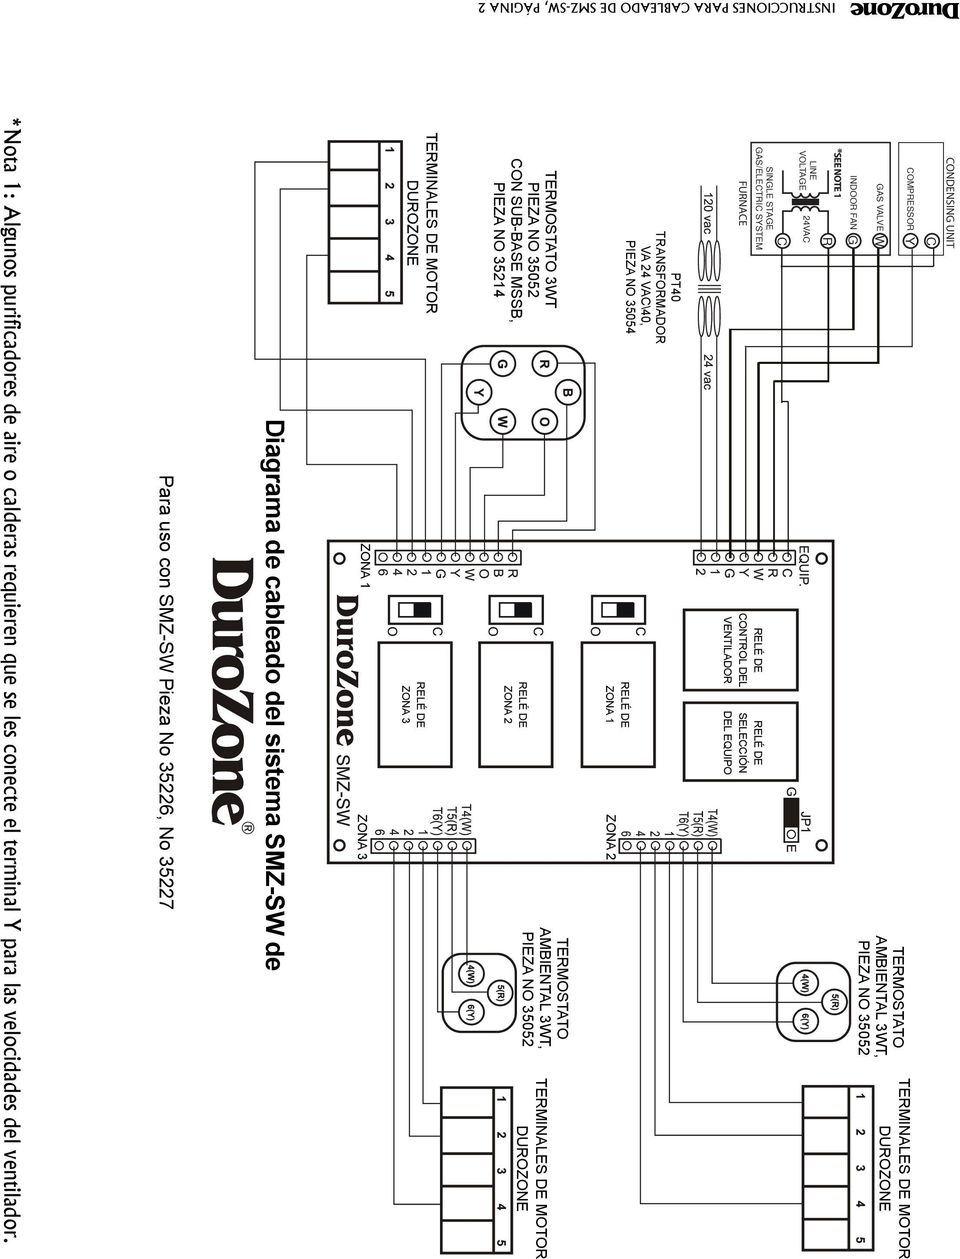 ac delco alternator wiring diagram old fashioned acdelco electrical utility pole durozone auto related with